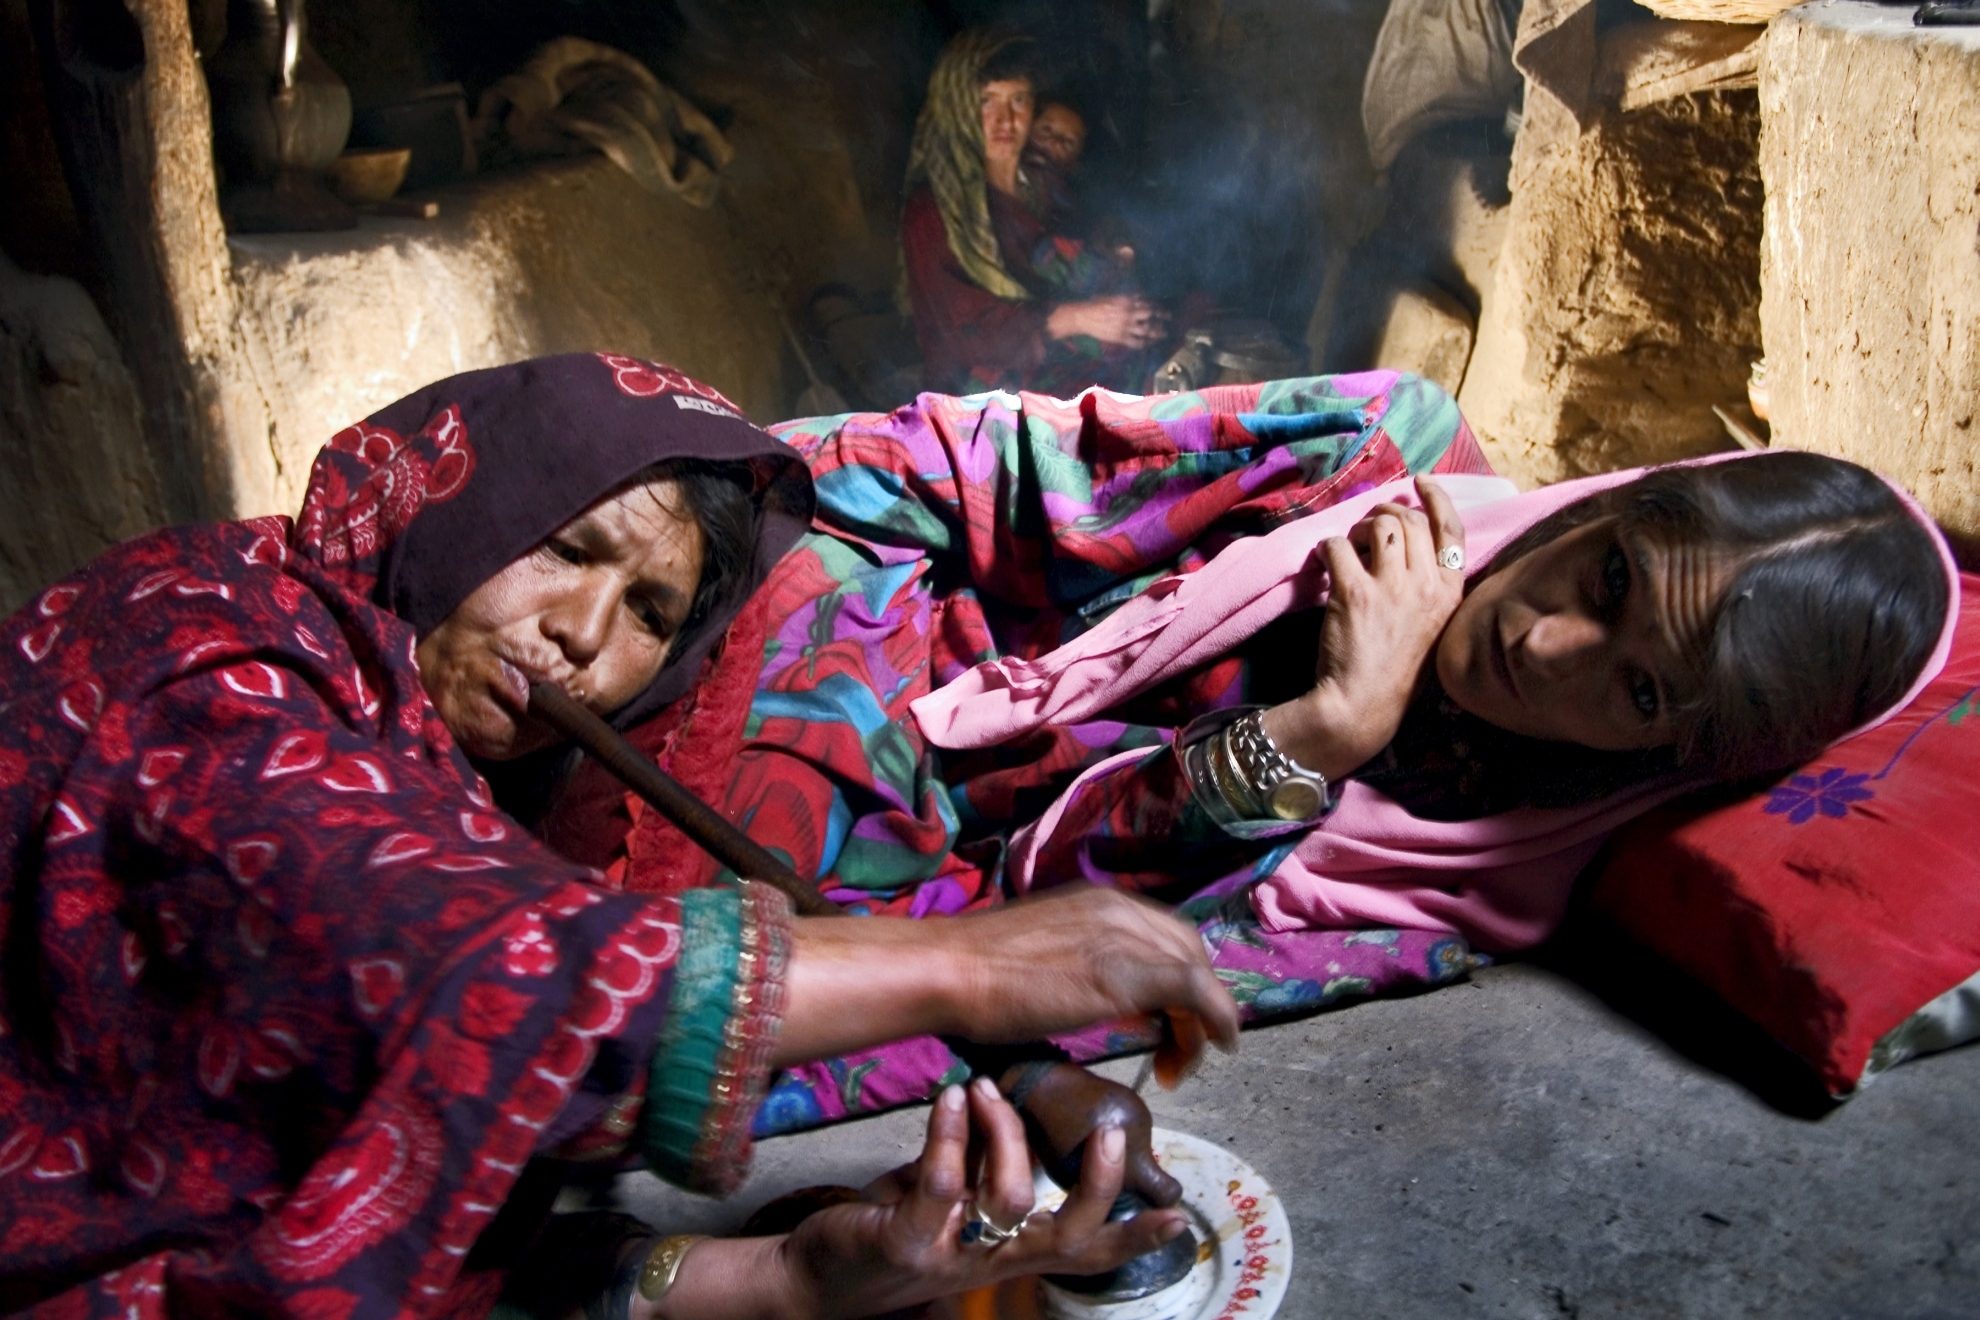 The dramatic increase in Afghan drug abuse is followed by great social and economic problems for both individual users and society at large. It affects the workforce, increases the number of domestic and traffic accidents, leads to crime, increases the spread of diseases such as AIDS and hepatitis and causes mental disorders and accidental deaths. Photo: UN Photo/UNODC/Zalmai, 2005